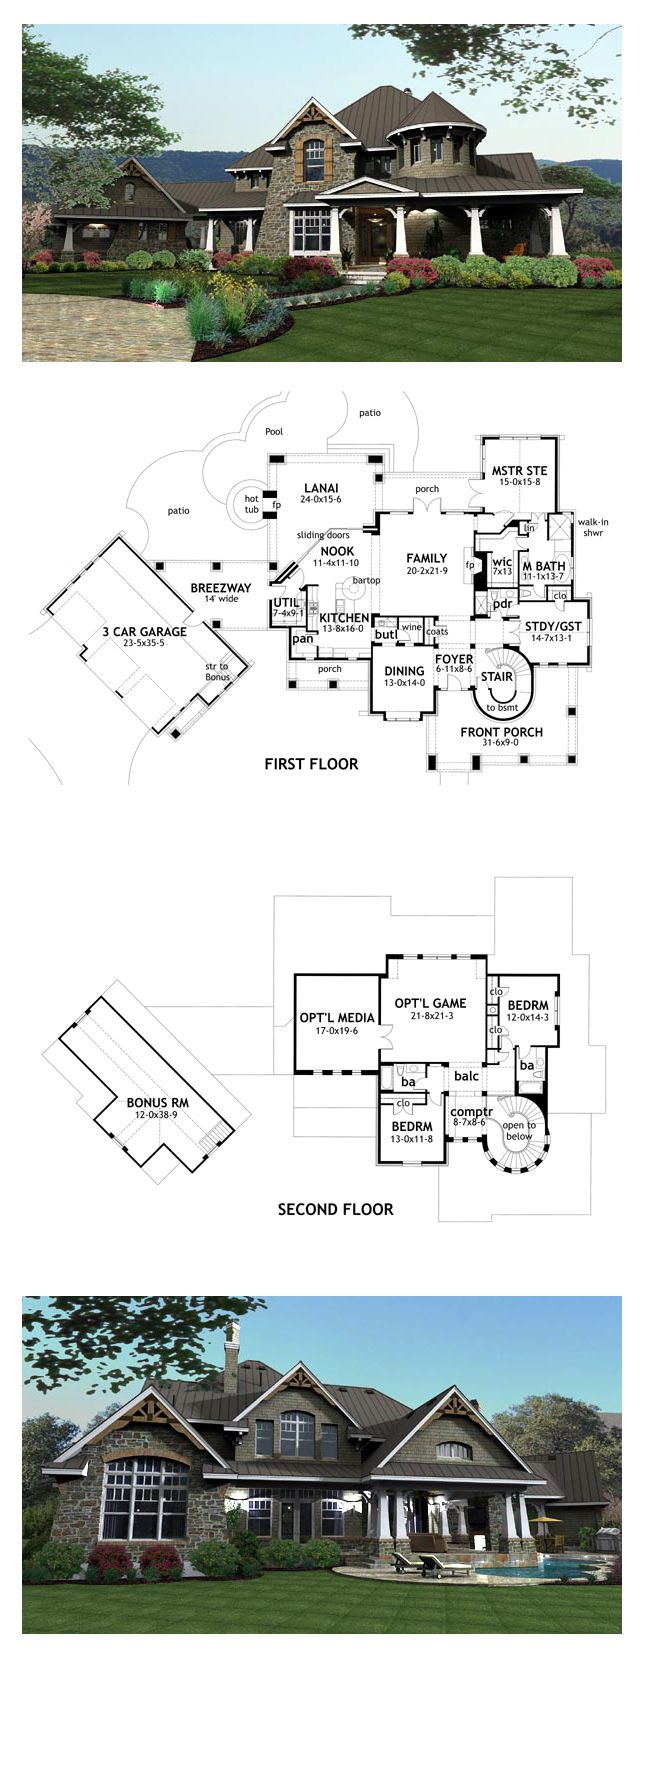 Tuscan House Plan 65872   Total Living Area: 3349 sq. ft., 4 bedrooms & 4 bathrooms. #houseplan #tuscanstyle